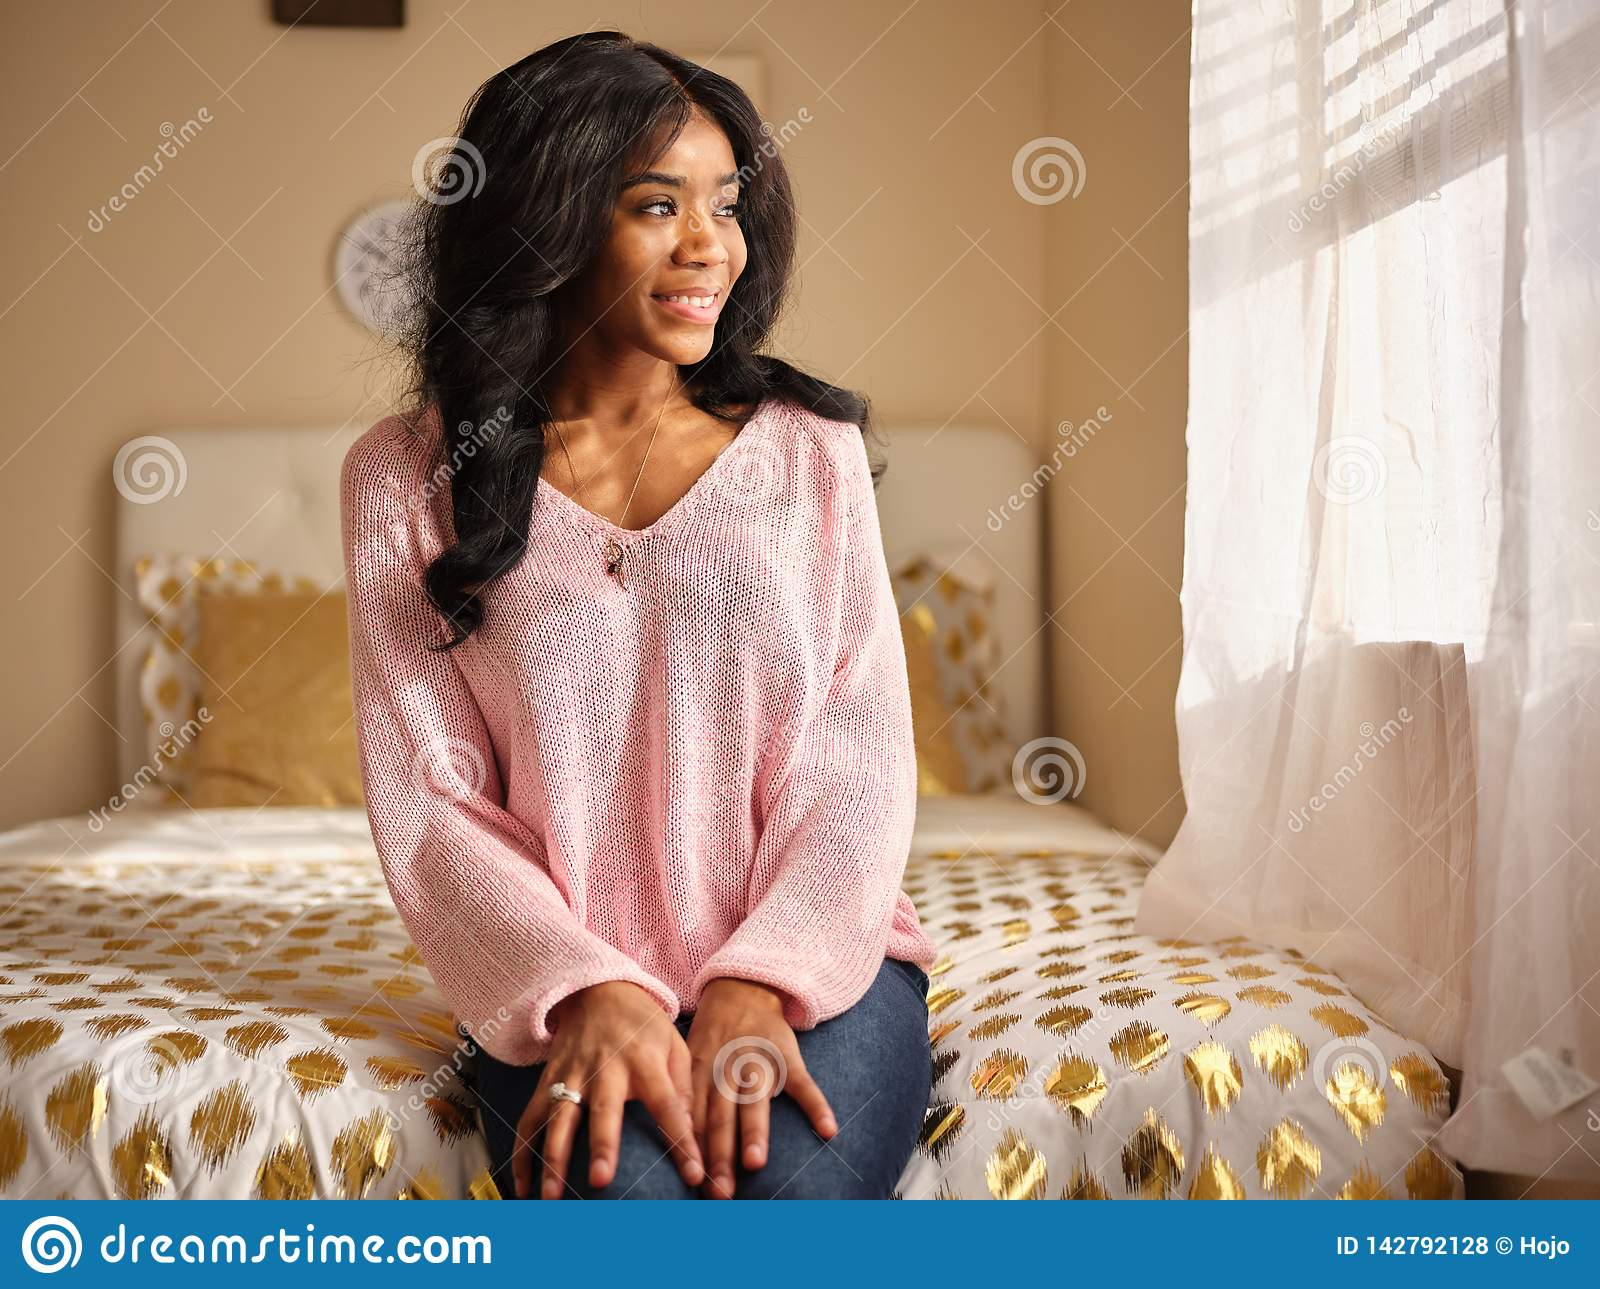 Candid portrait of young african american woman wearing pink sweater sitting on bed at home